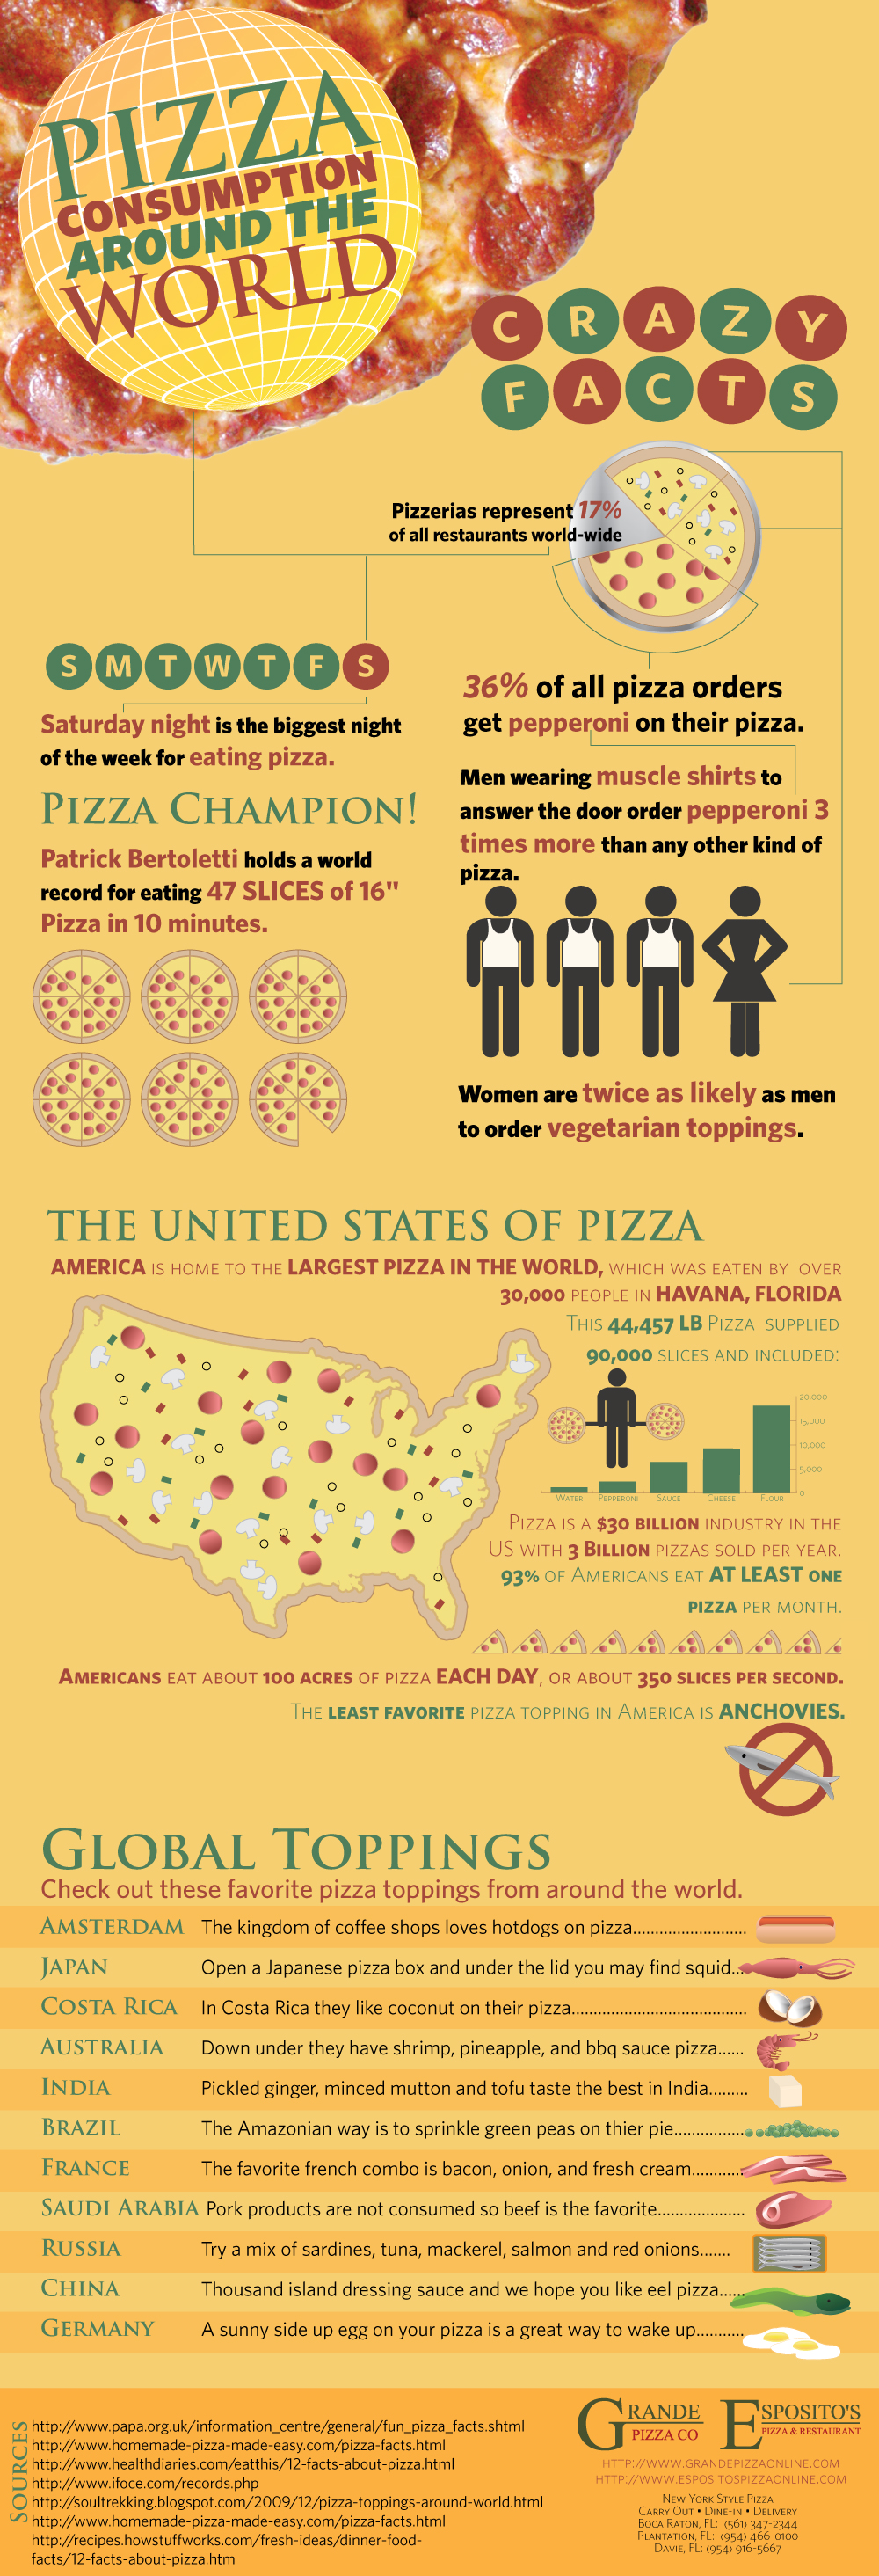 Pizza Consumption Around The World